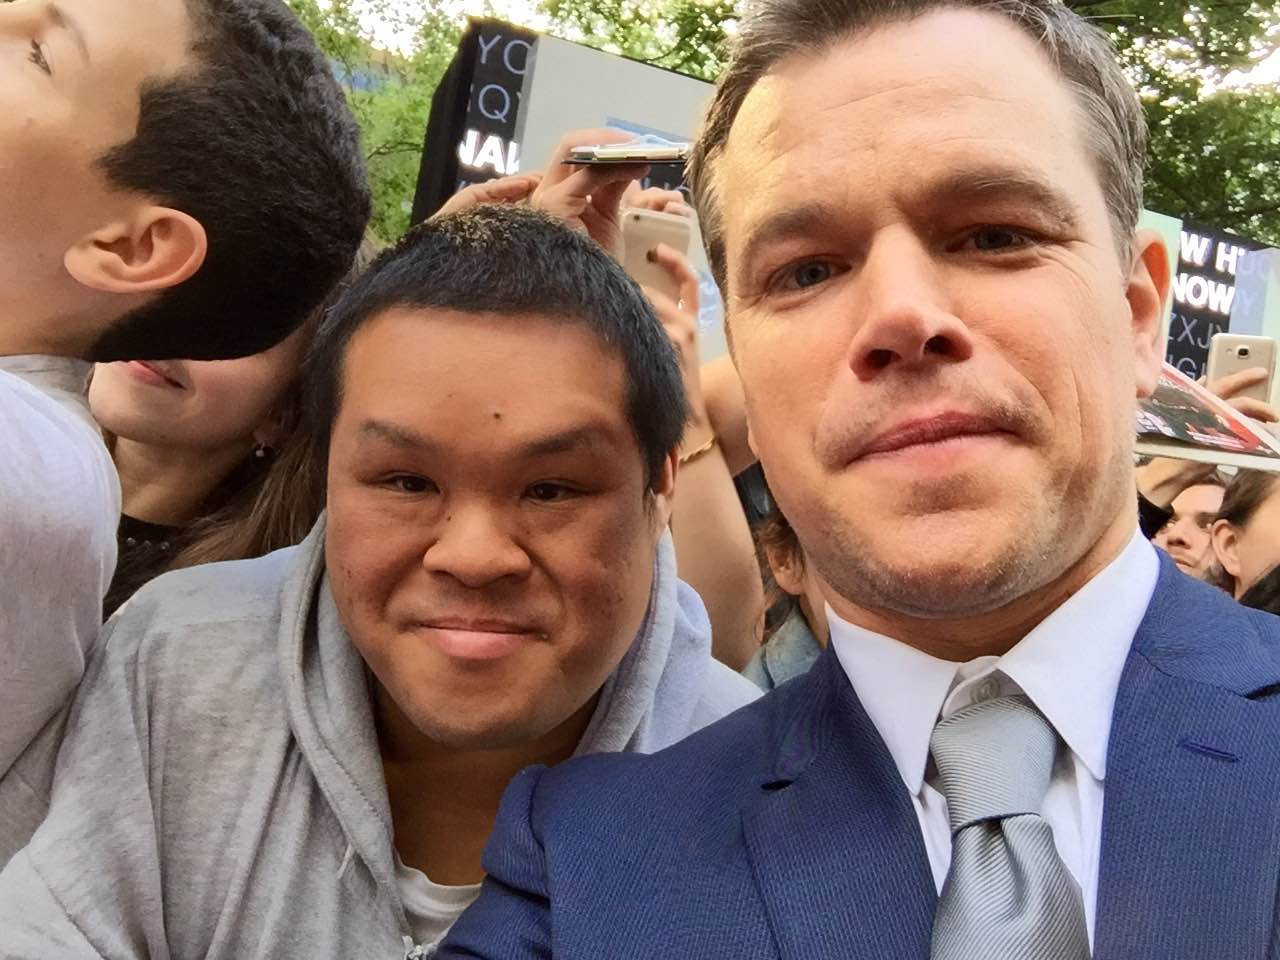 Matt Damon meets fans